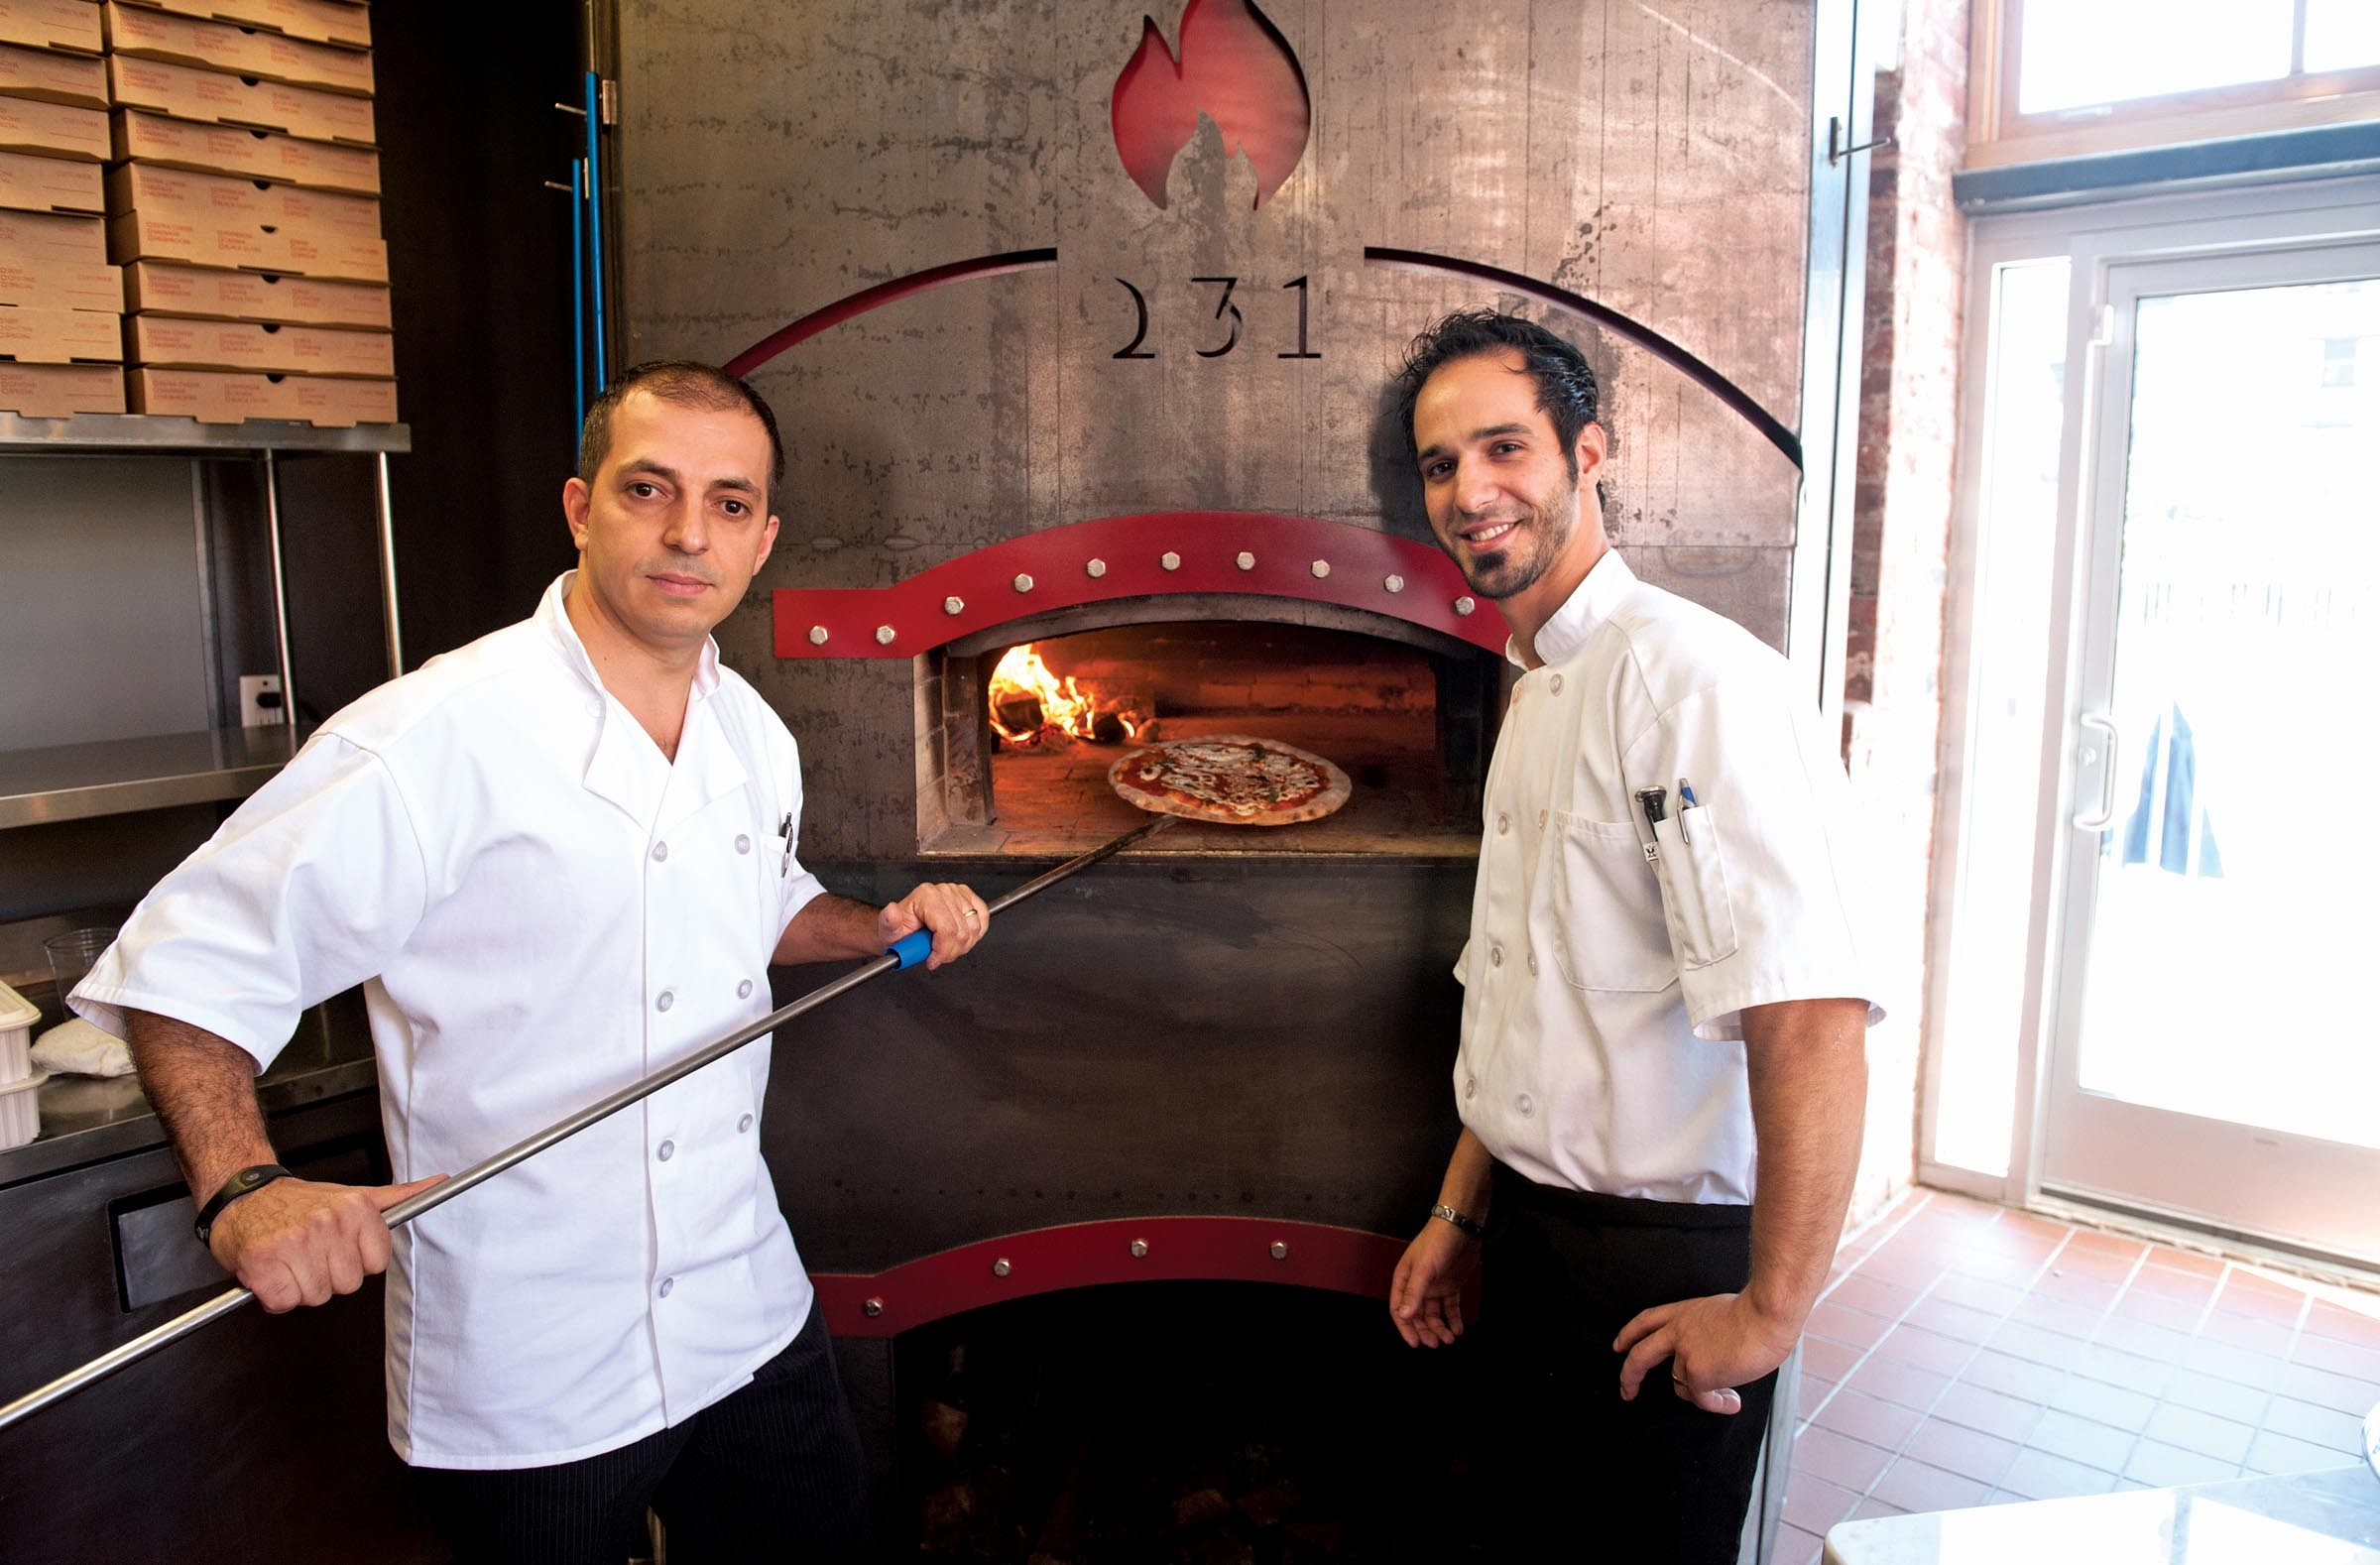 Chief Executive Danny Taormina and Chief Operating Officer Guiseppe Taormina turn up the heat at Flames 231. - SCOTT ELMQUIST